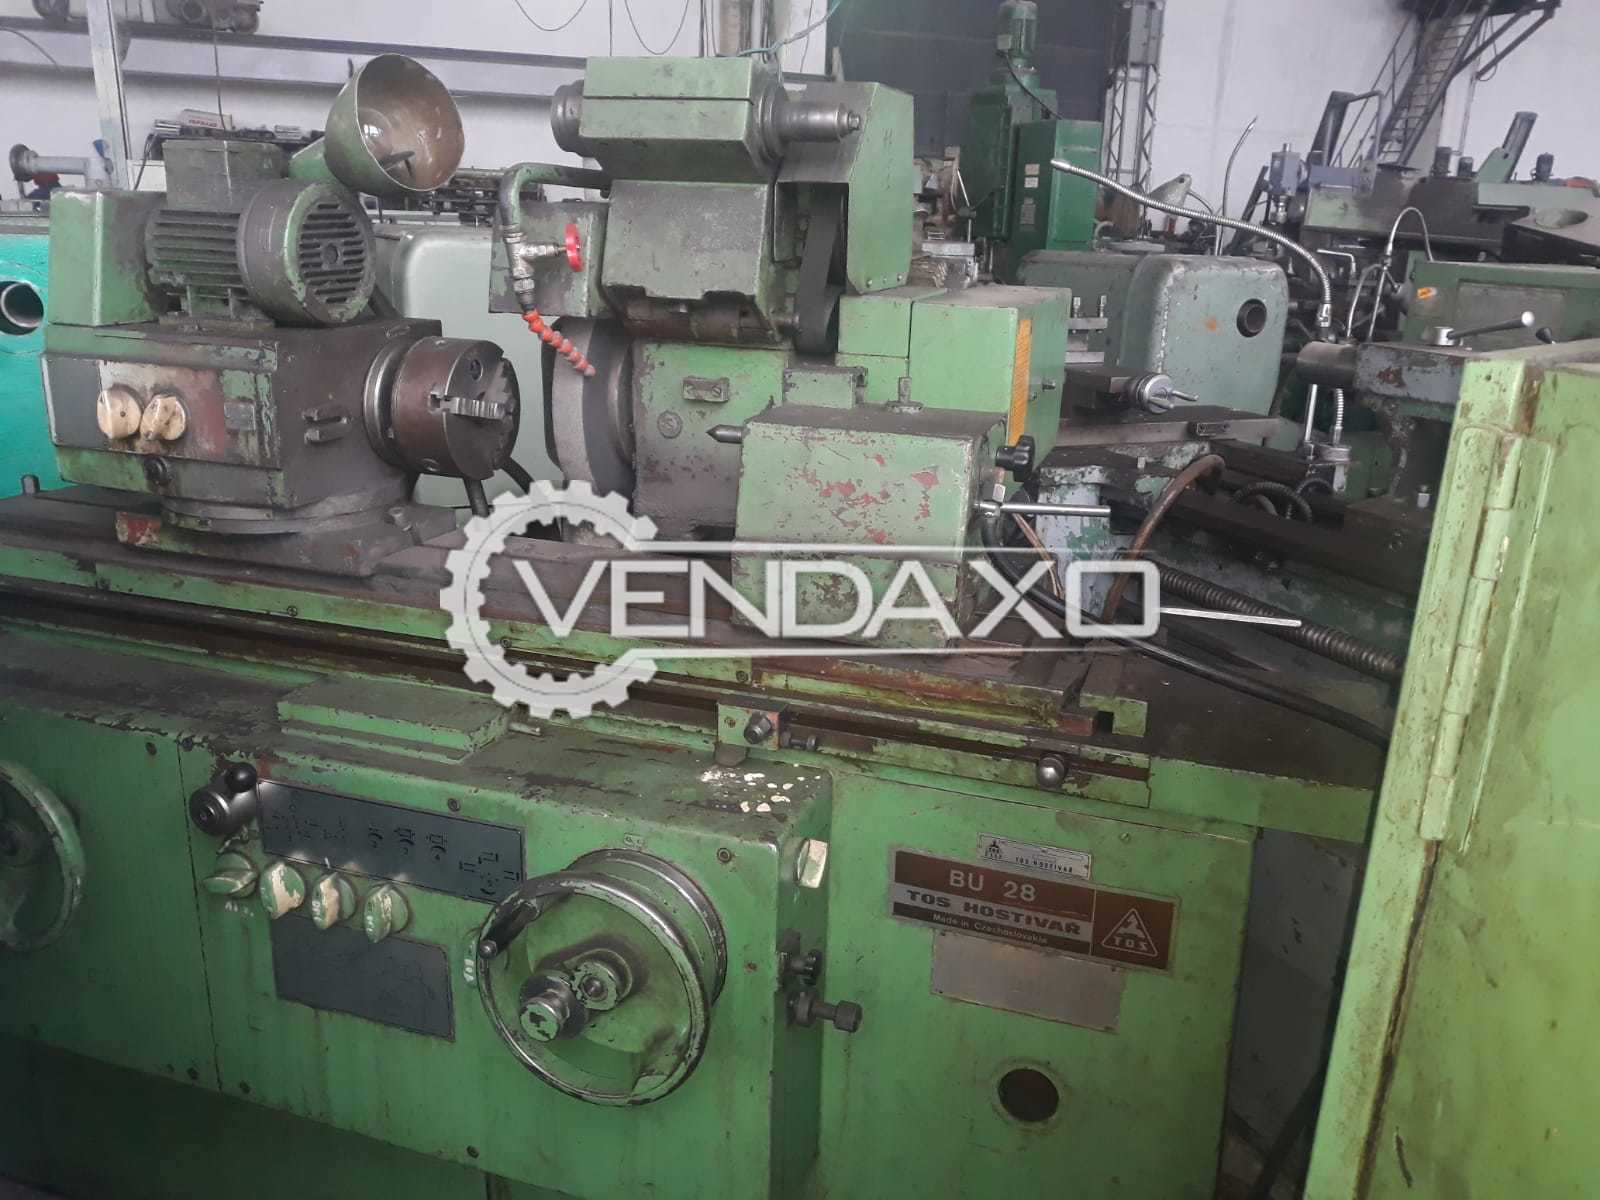 TOS BU28 Cylindrical Grinding Machine - Capacity : 630 mm